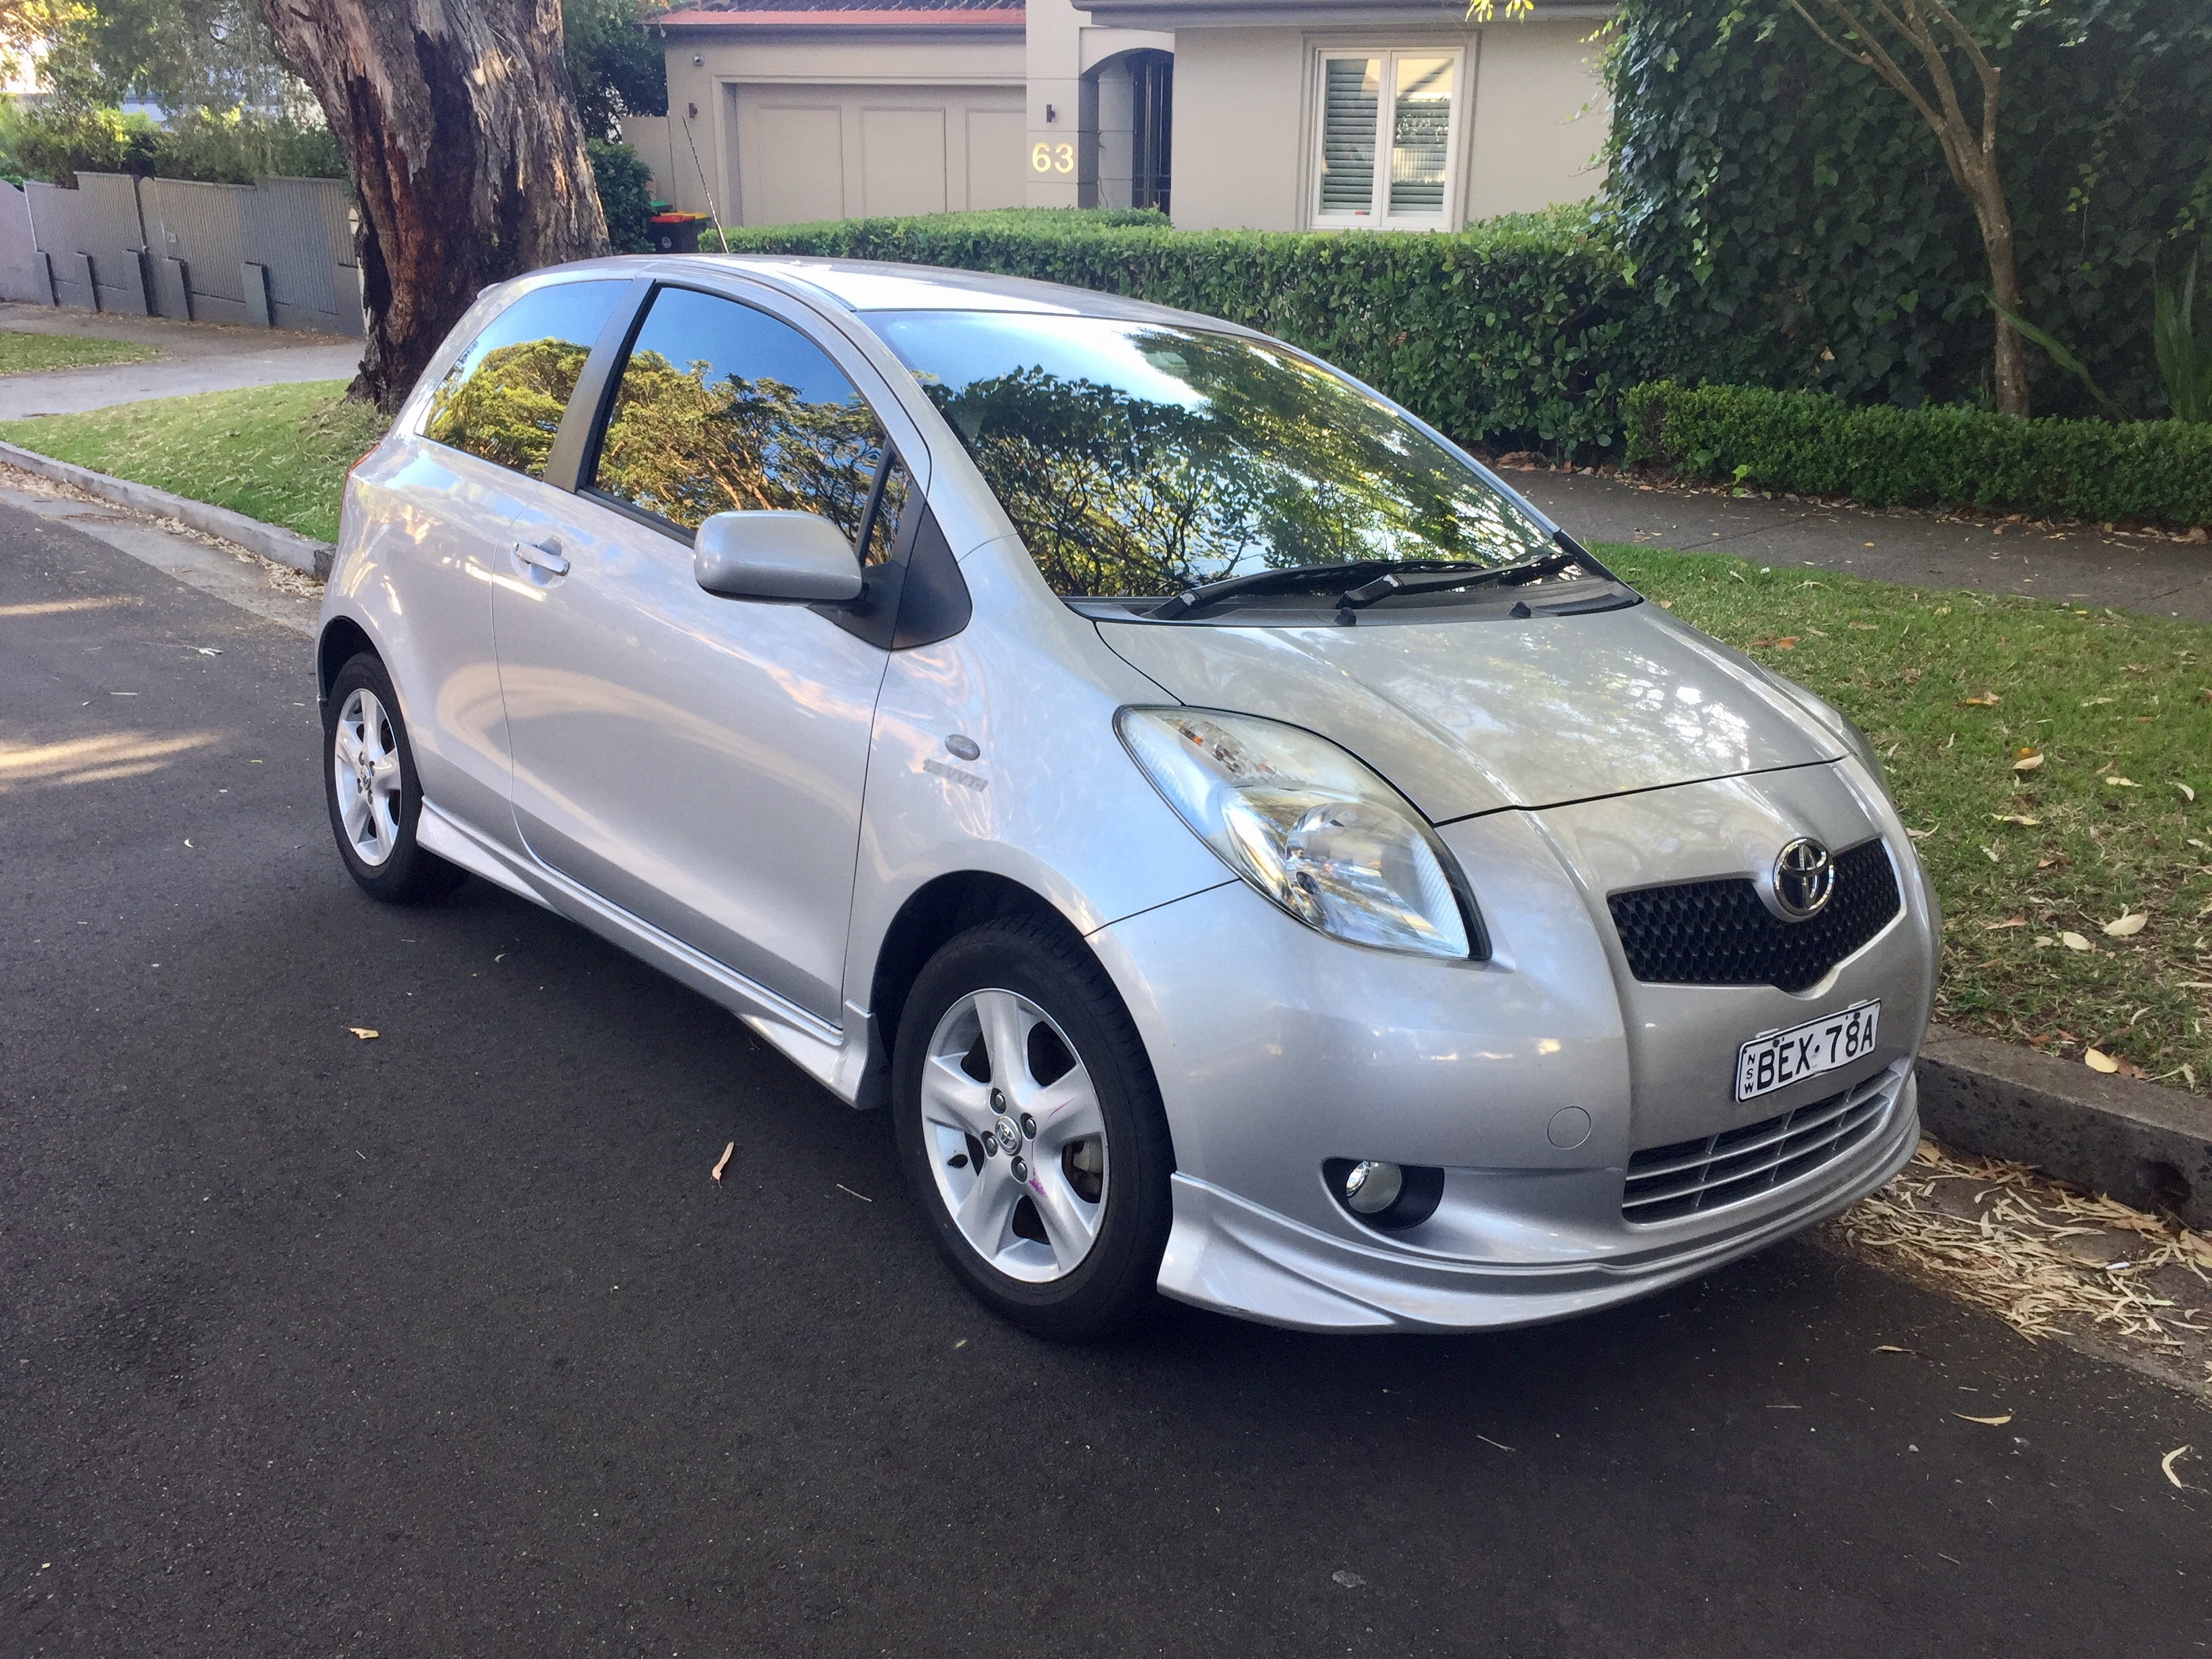 Picture of Kinga's 2007 Toyota Yaris